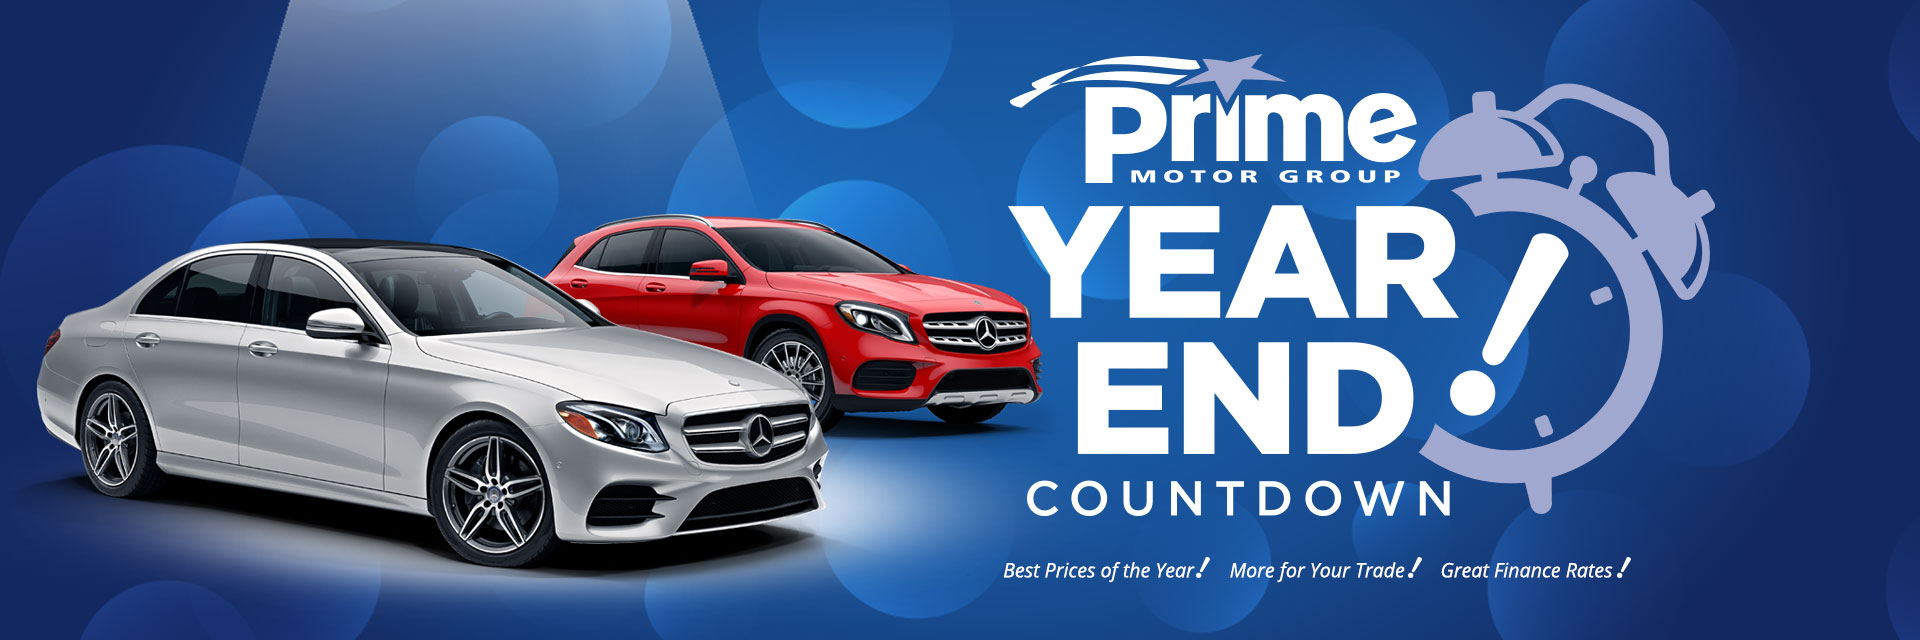 Mercedes benz of westwood new used dealership serving for Prime mercedes benz of westwood